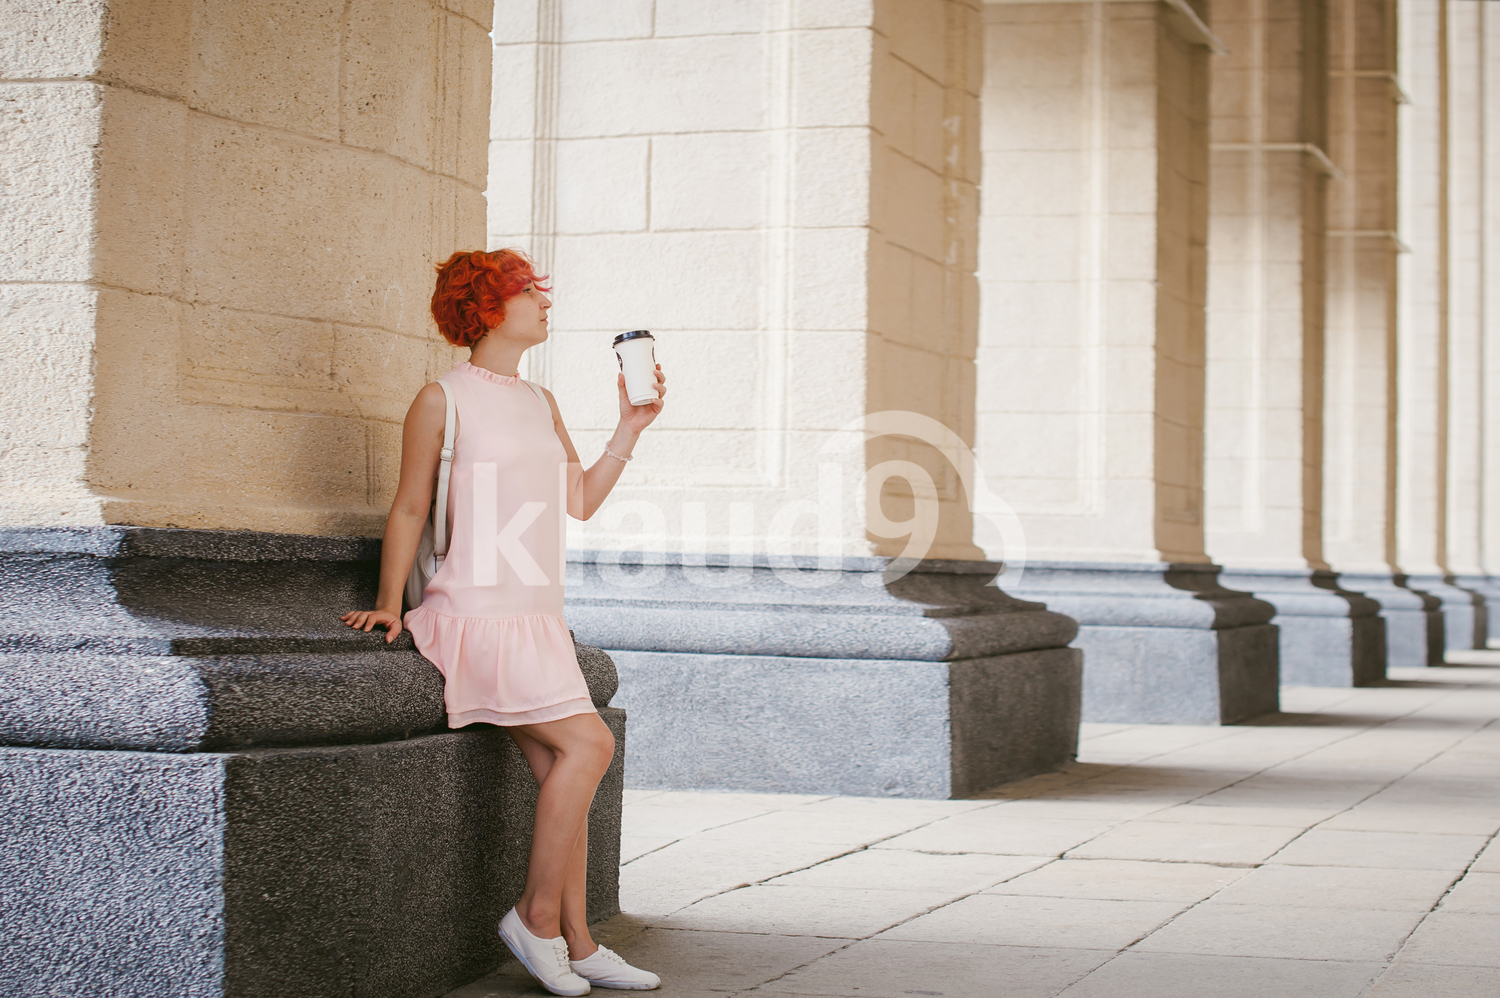 Woman in pale pink dress and a coffee cup